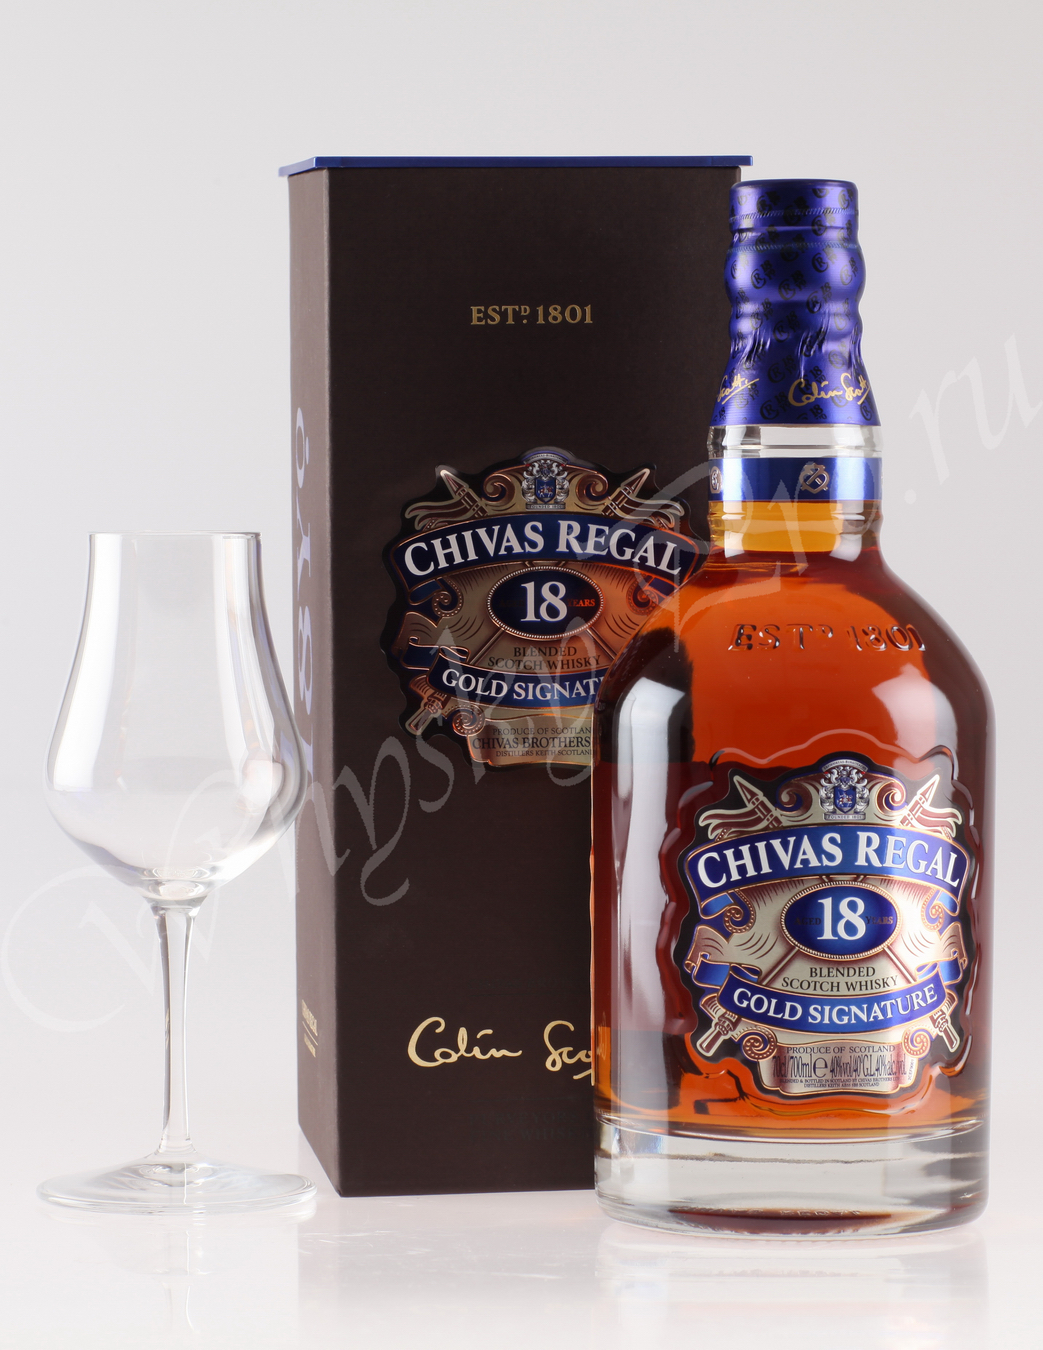 Виски Чивас Ригал 18 лет Шотландский виски Chivas Regal 18 years